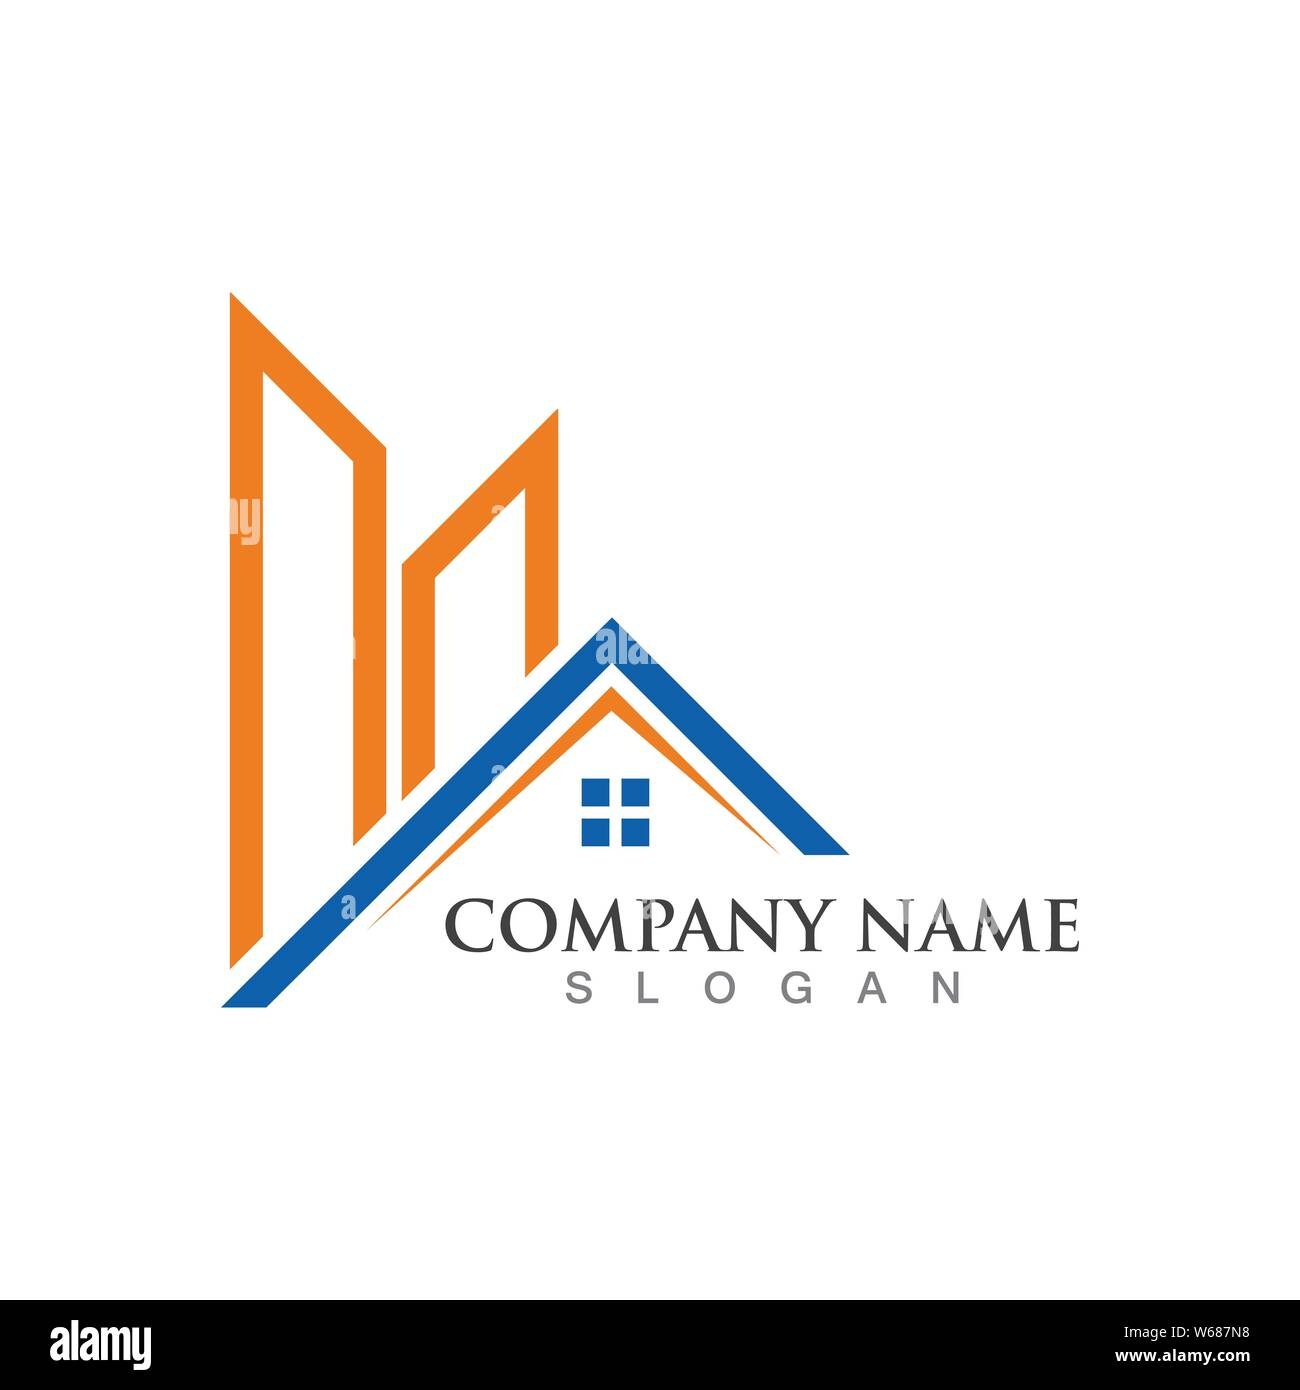 Home Logo And Symbol Property And Construction Logo Design Stock Vector Image Art Alamy